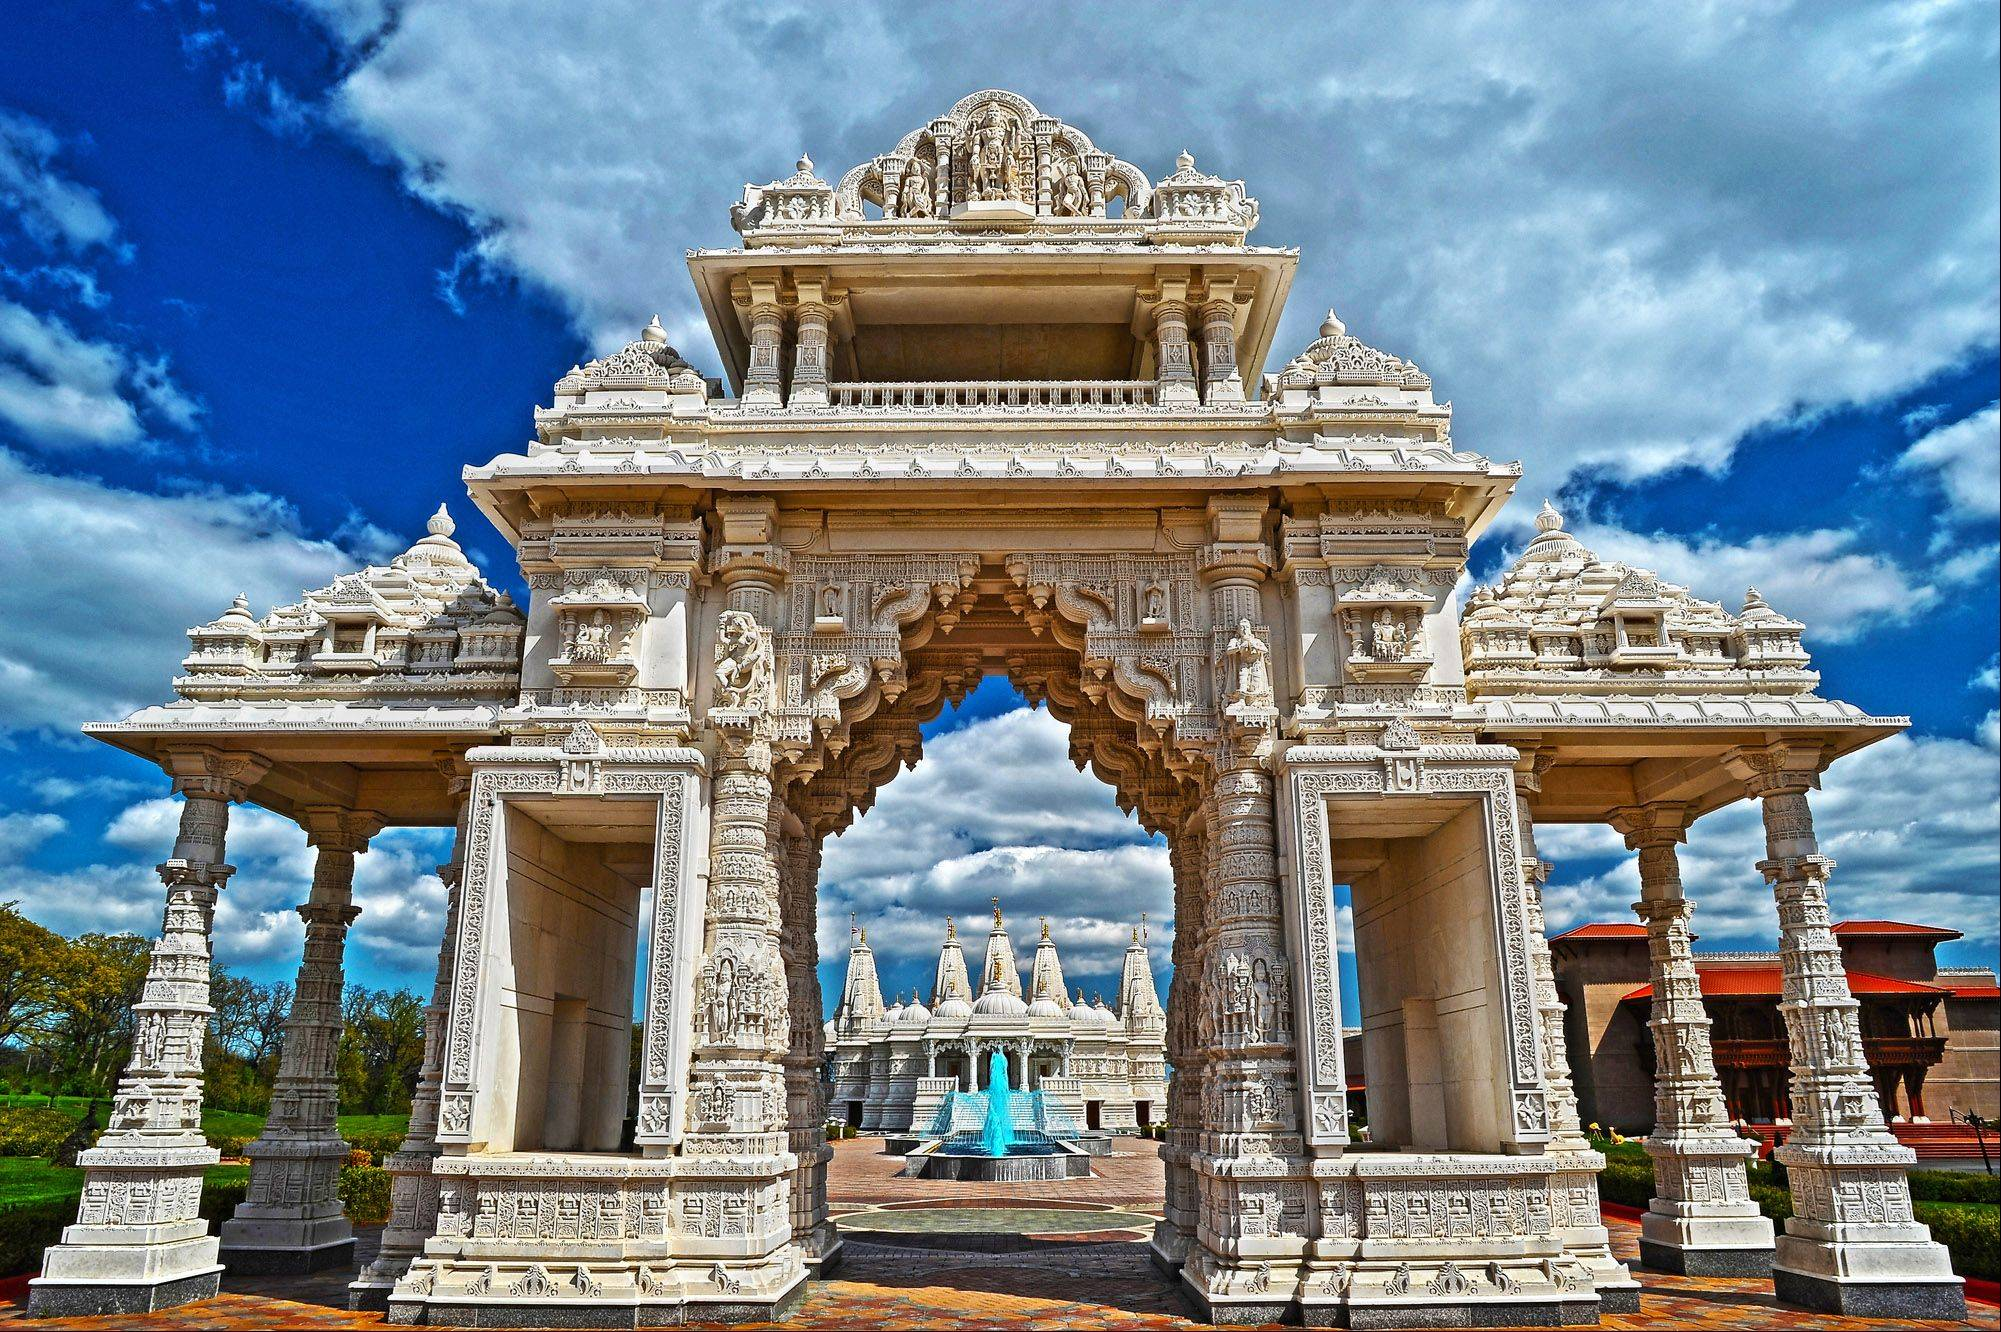 I'm experimenting with HDR at Shri Swaminarayan Mandir Temple in Bartlett IL. Focus, interest and wonder in this masterpiece of ancient design and workmanship.